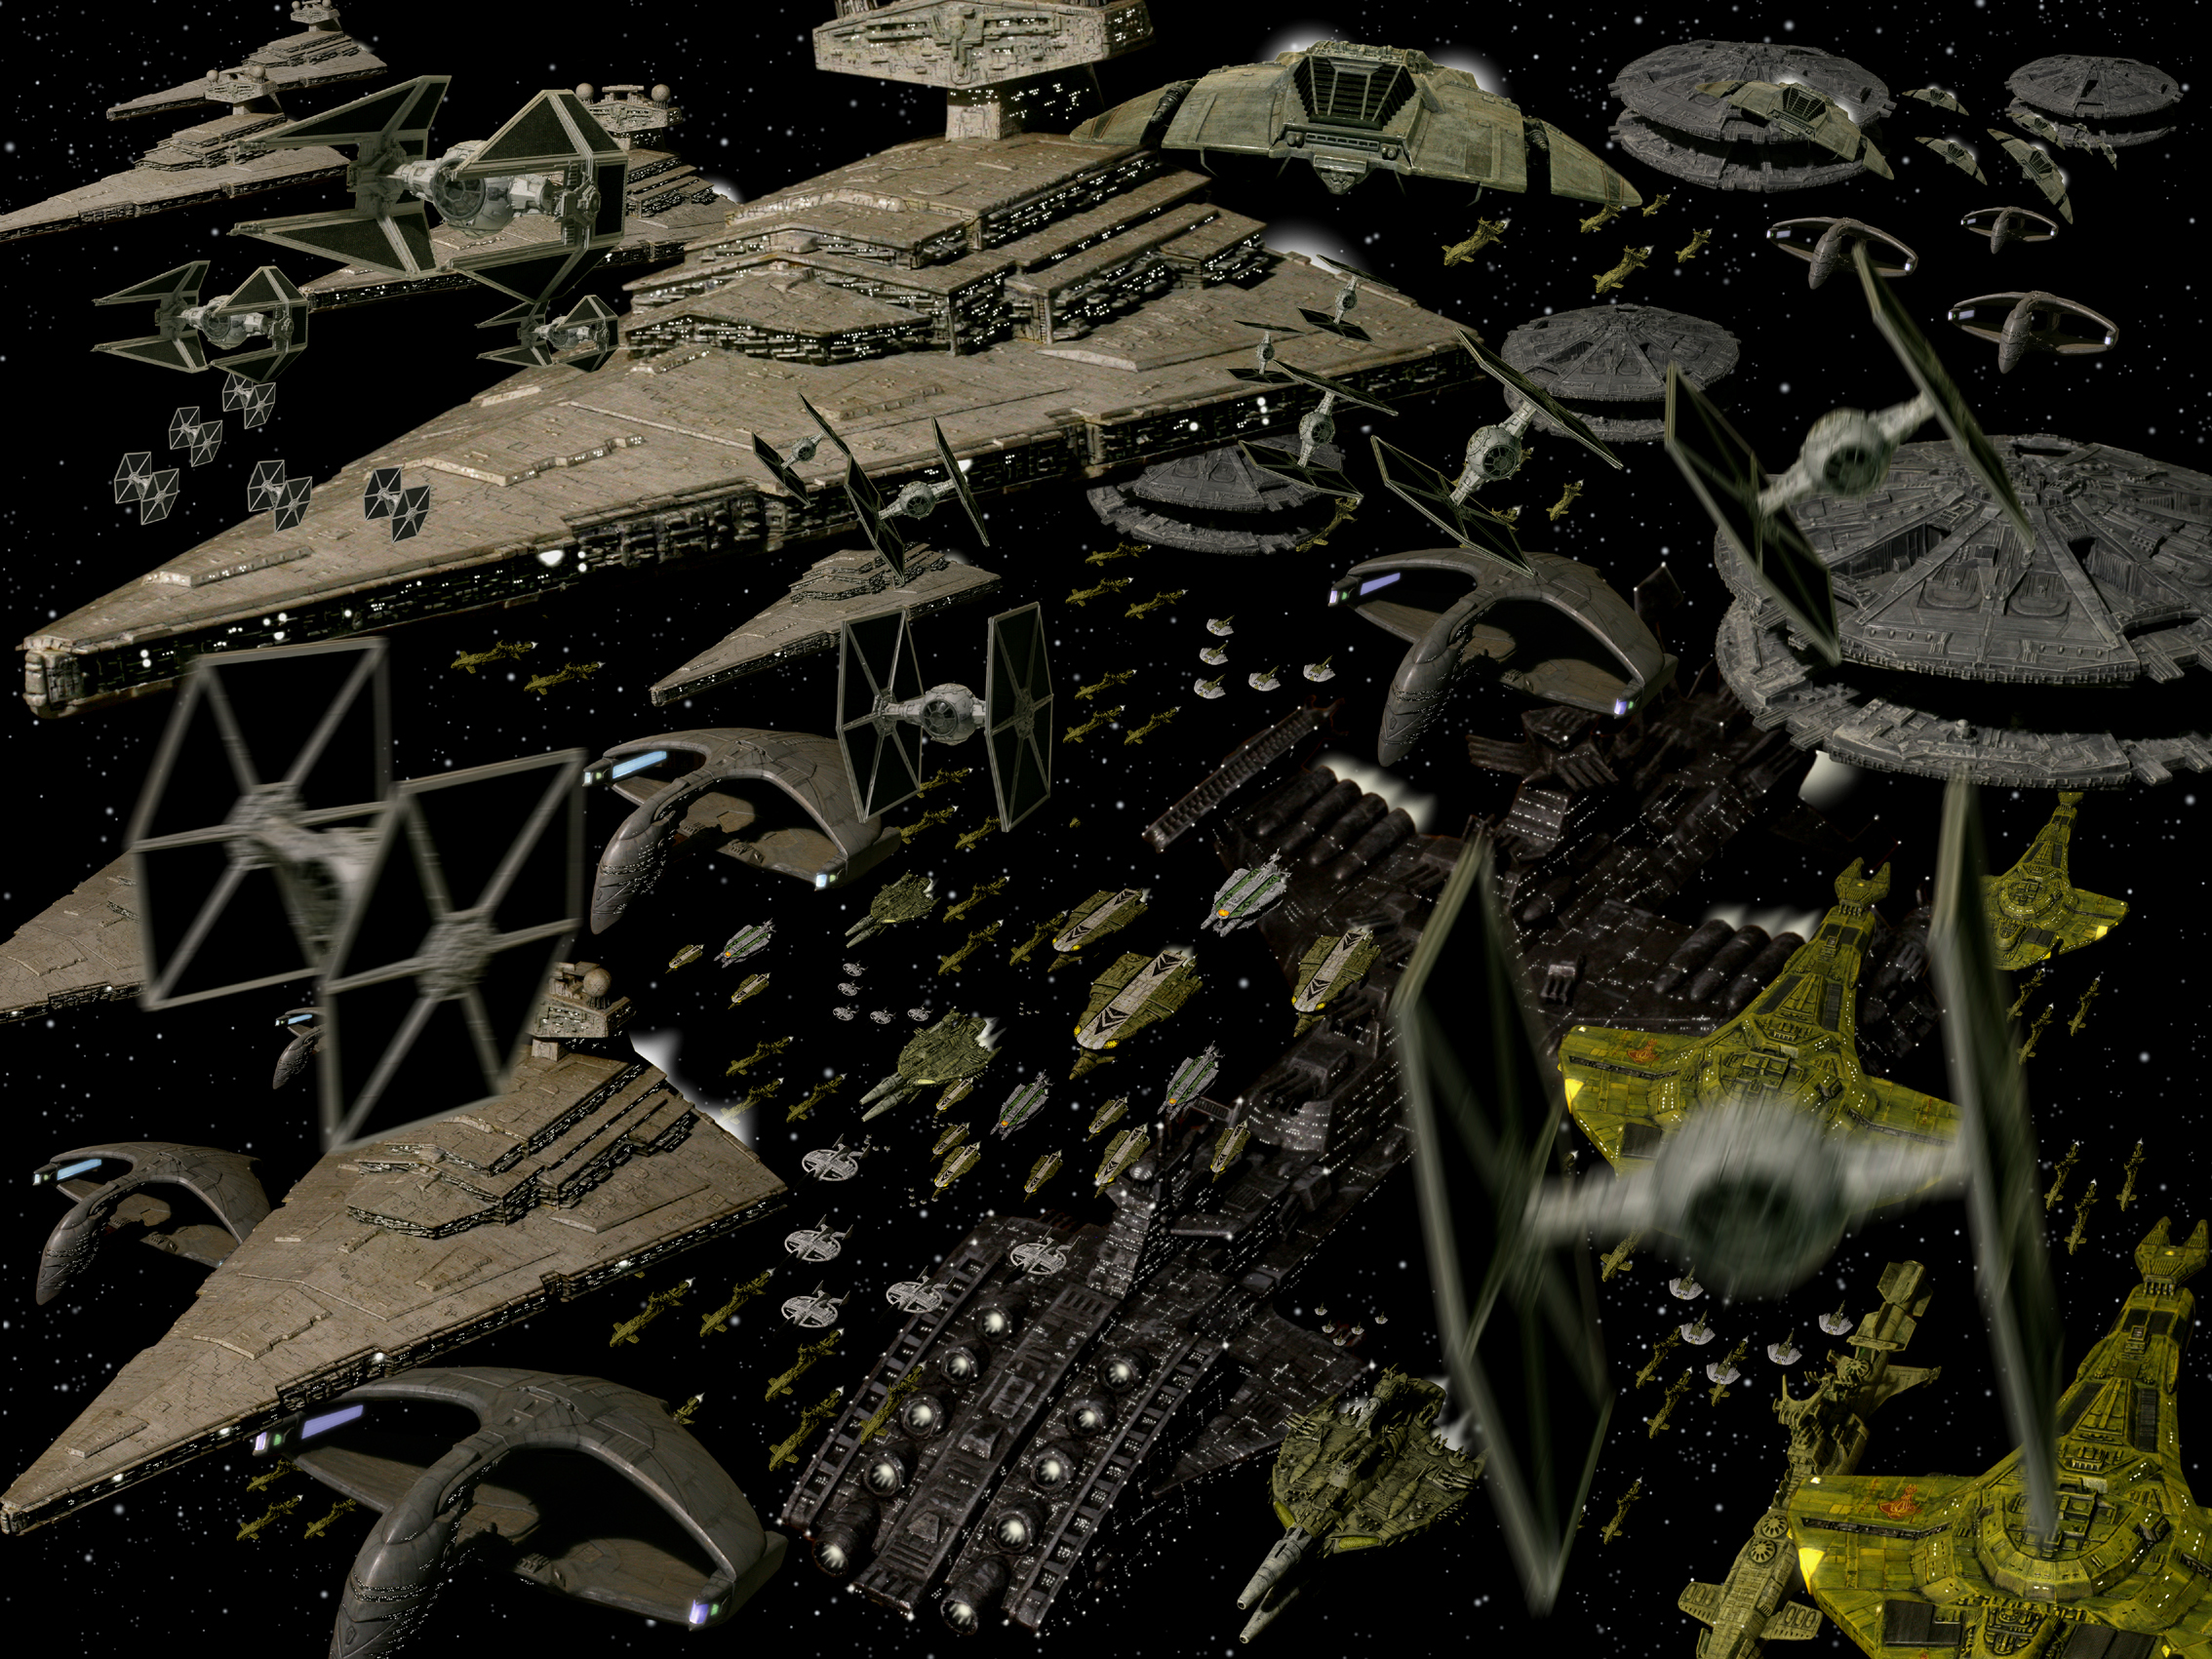 star wars spaceships vehicles HD Wallpaper